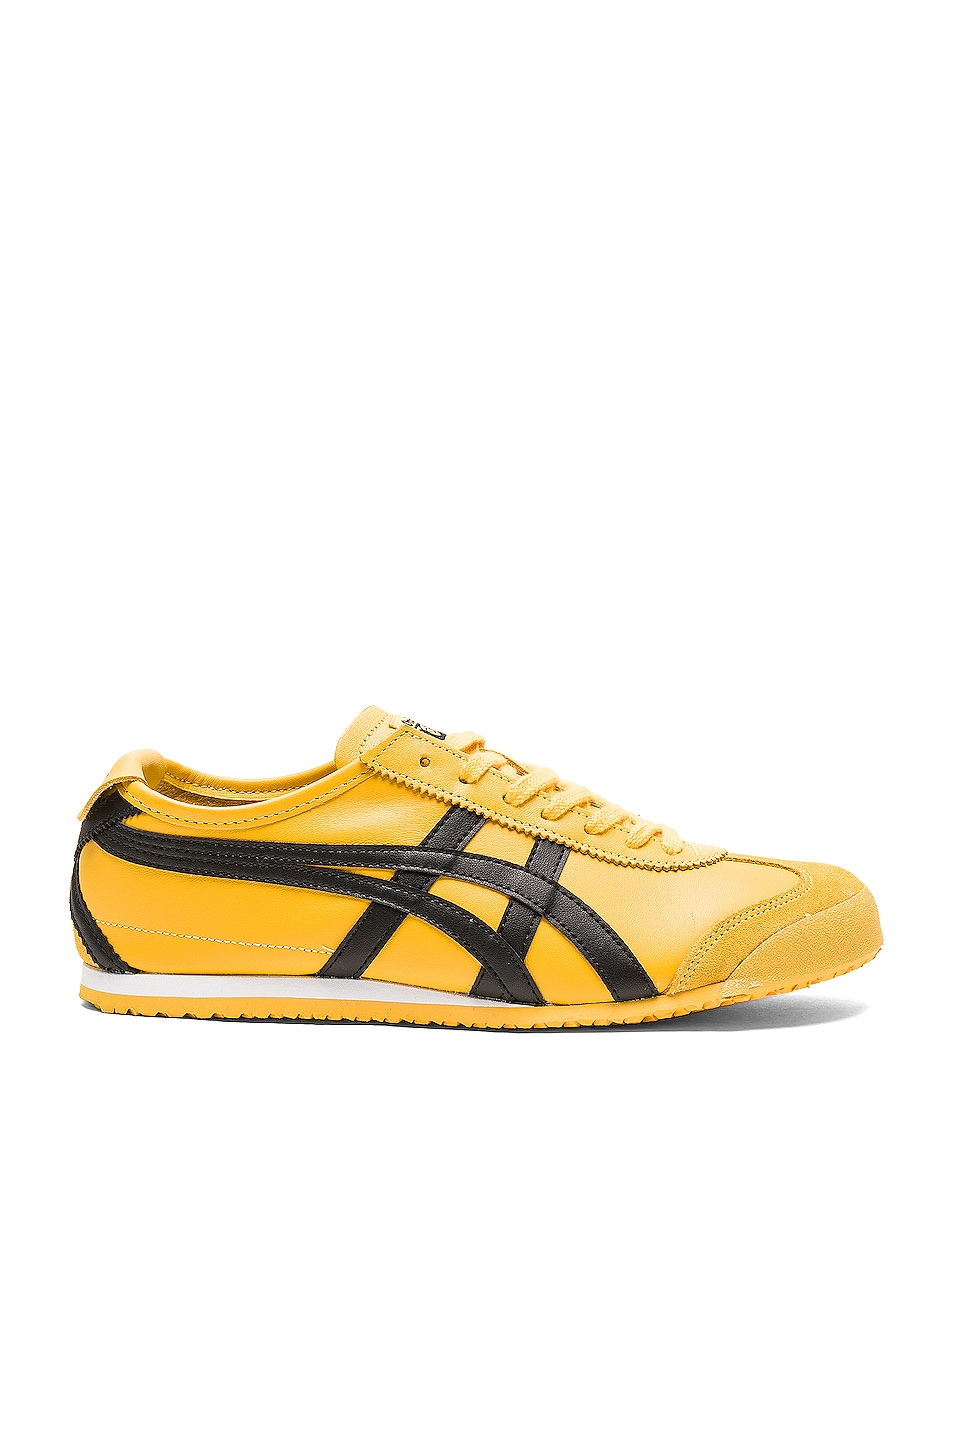 Image 1 of Onitsuka Tiger Mexico 66 in Yellow Black